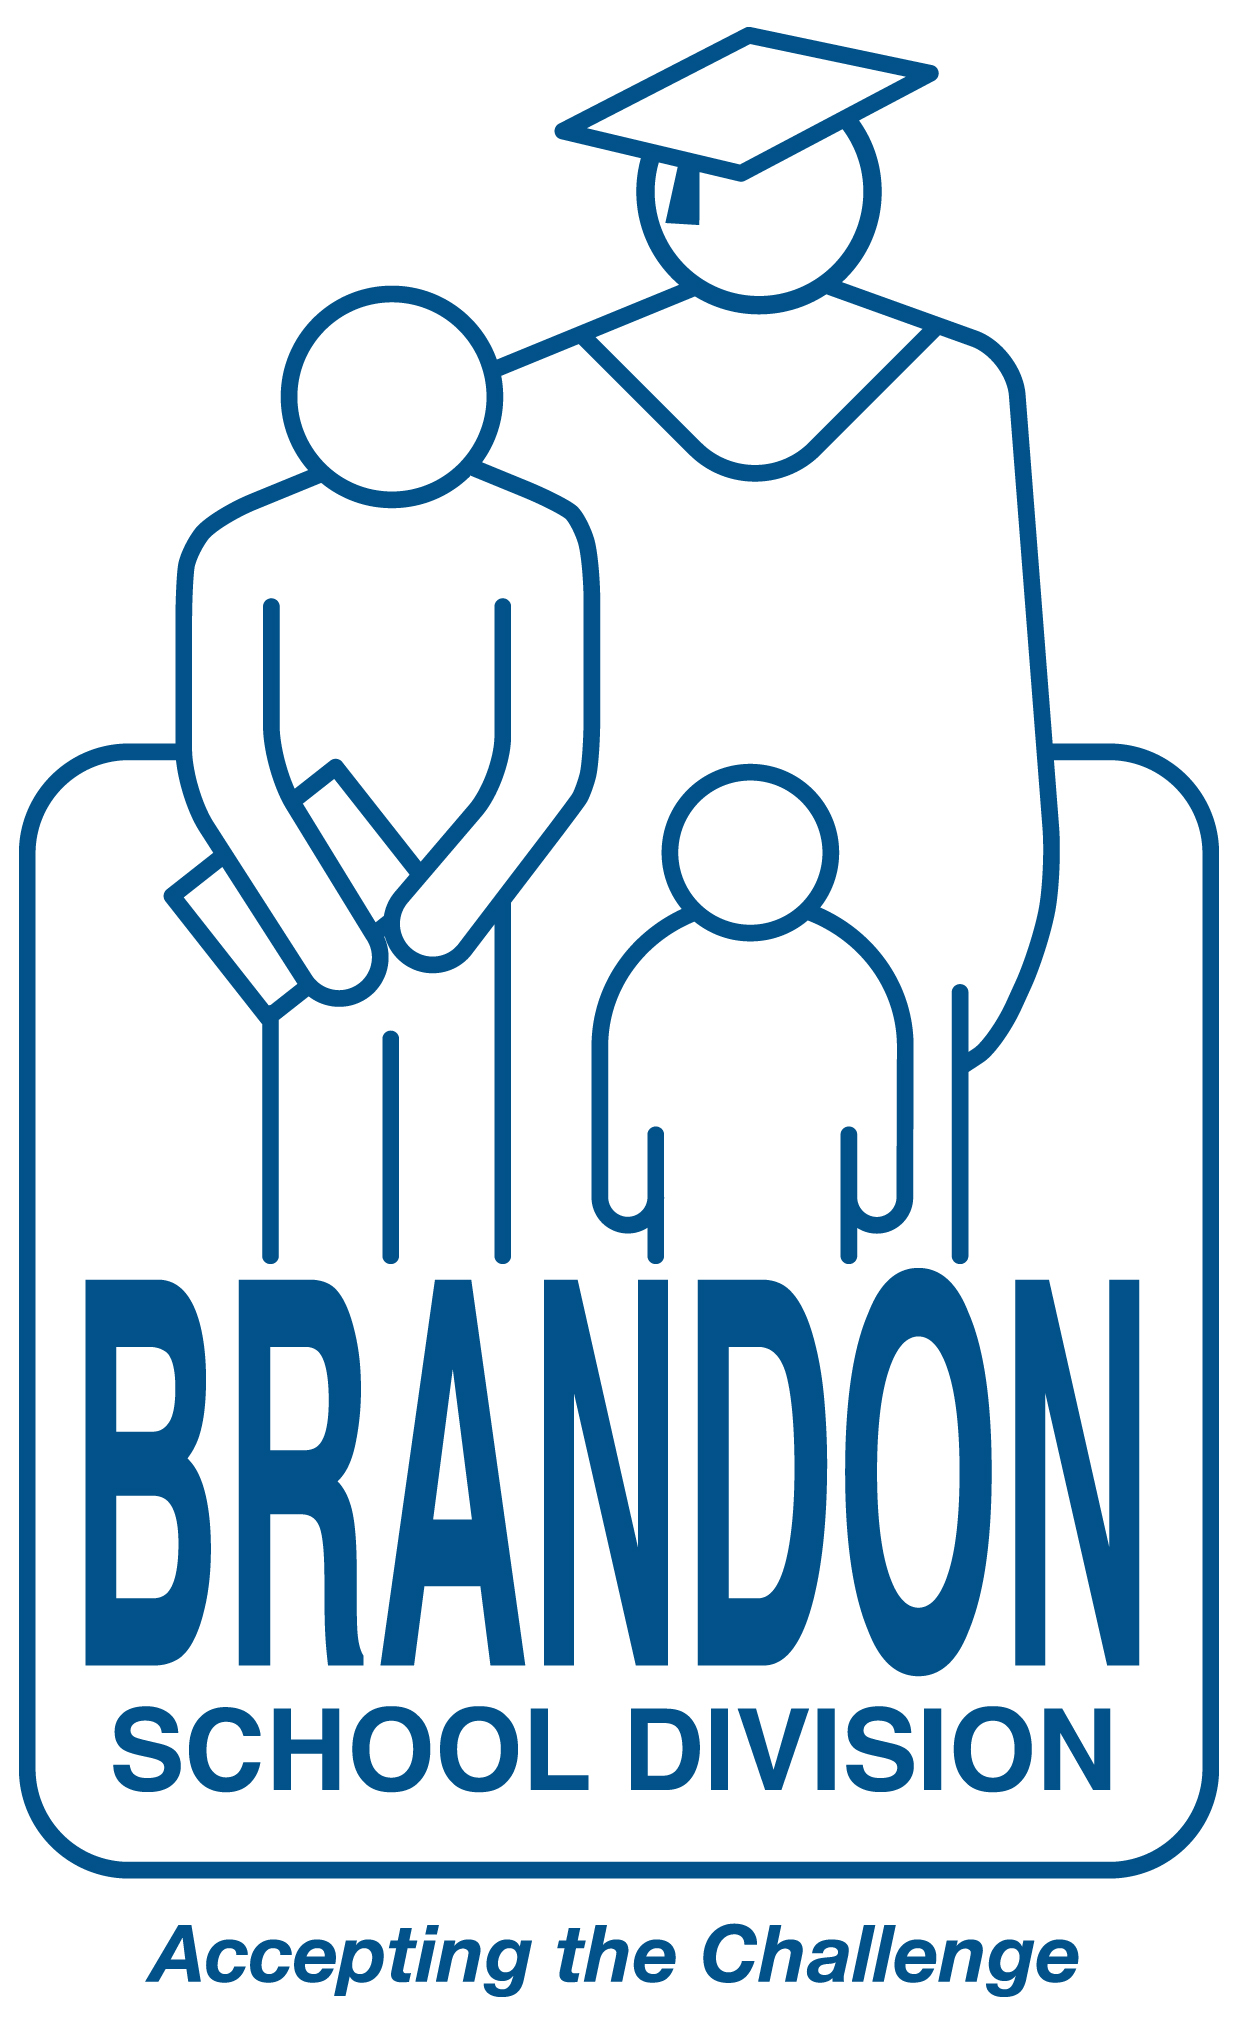 Organization logo of Brandon School Division